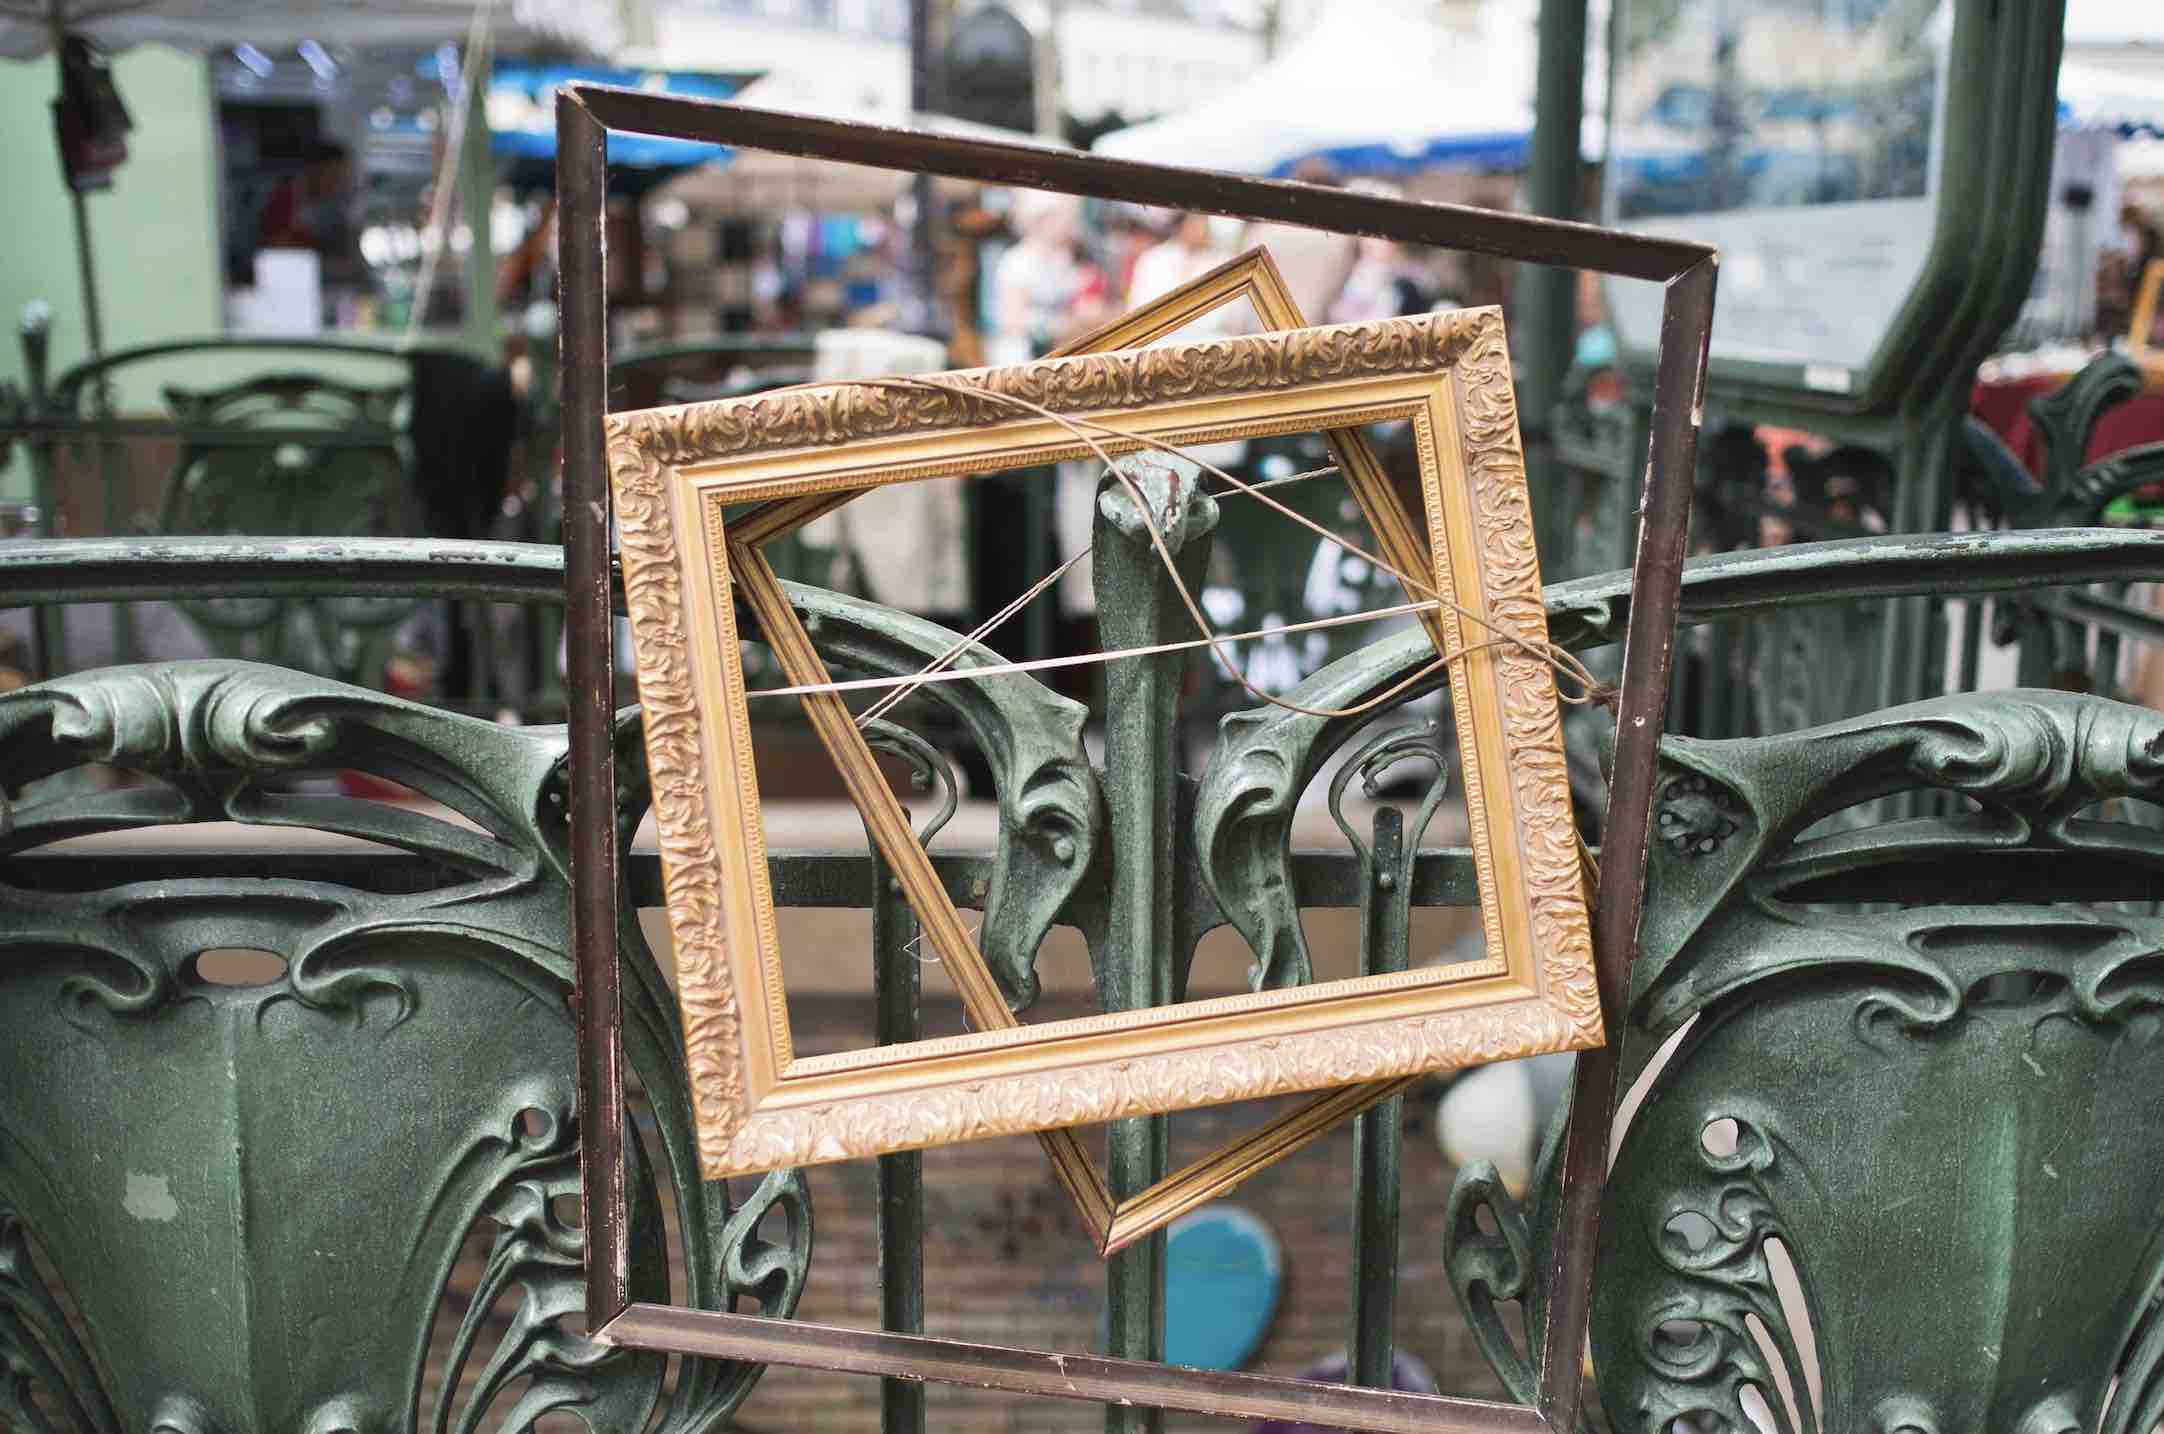 Visiting the antique market at St Paul Village is one of the top things to do in le Marais